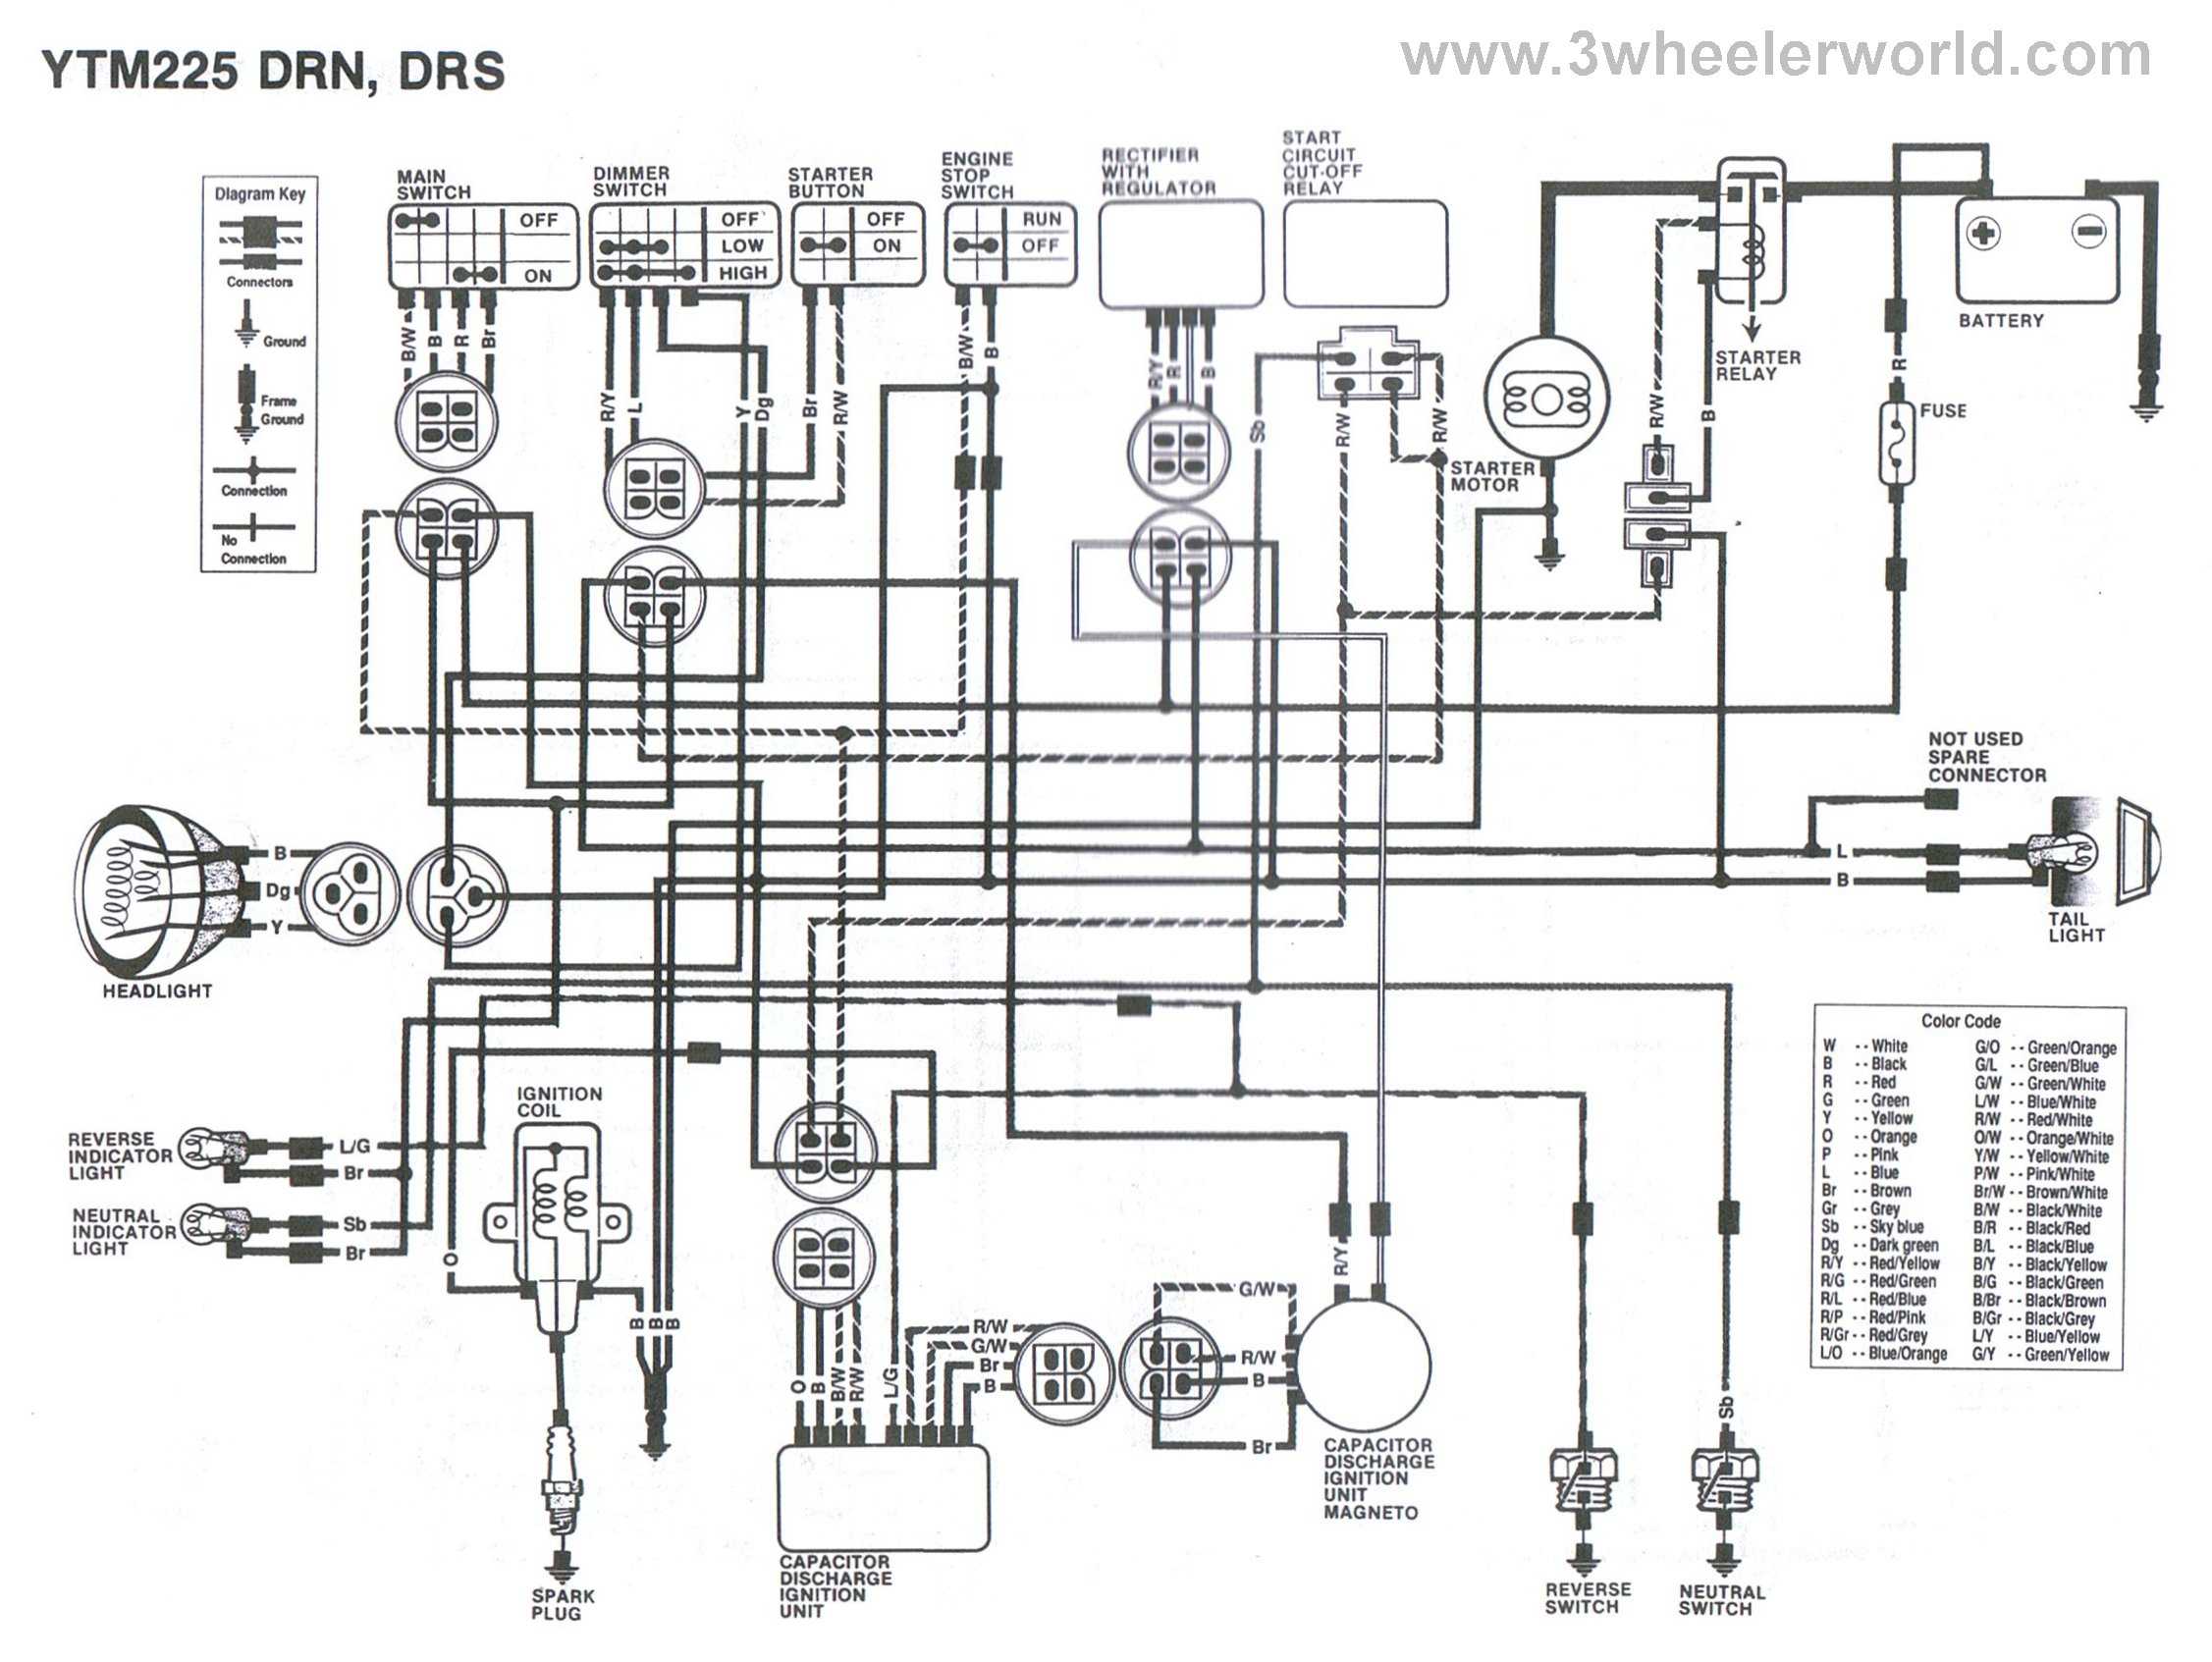 Pto Wiring Diagram 2005 Ford Trucks furthermore Ford 555 Backhoe Wiring Diagram besides 1957 Cadillac Power Steering Pump Diagram together with S 74 John Deere La145 Parts additionally WiringYamaha. on john deere 455 power steering hose